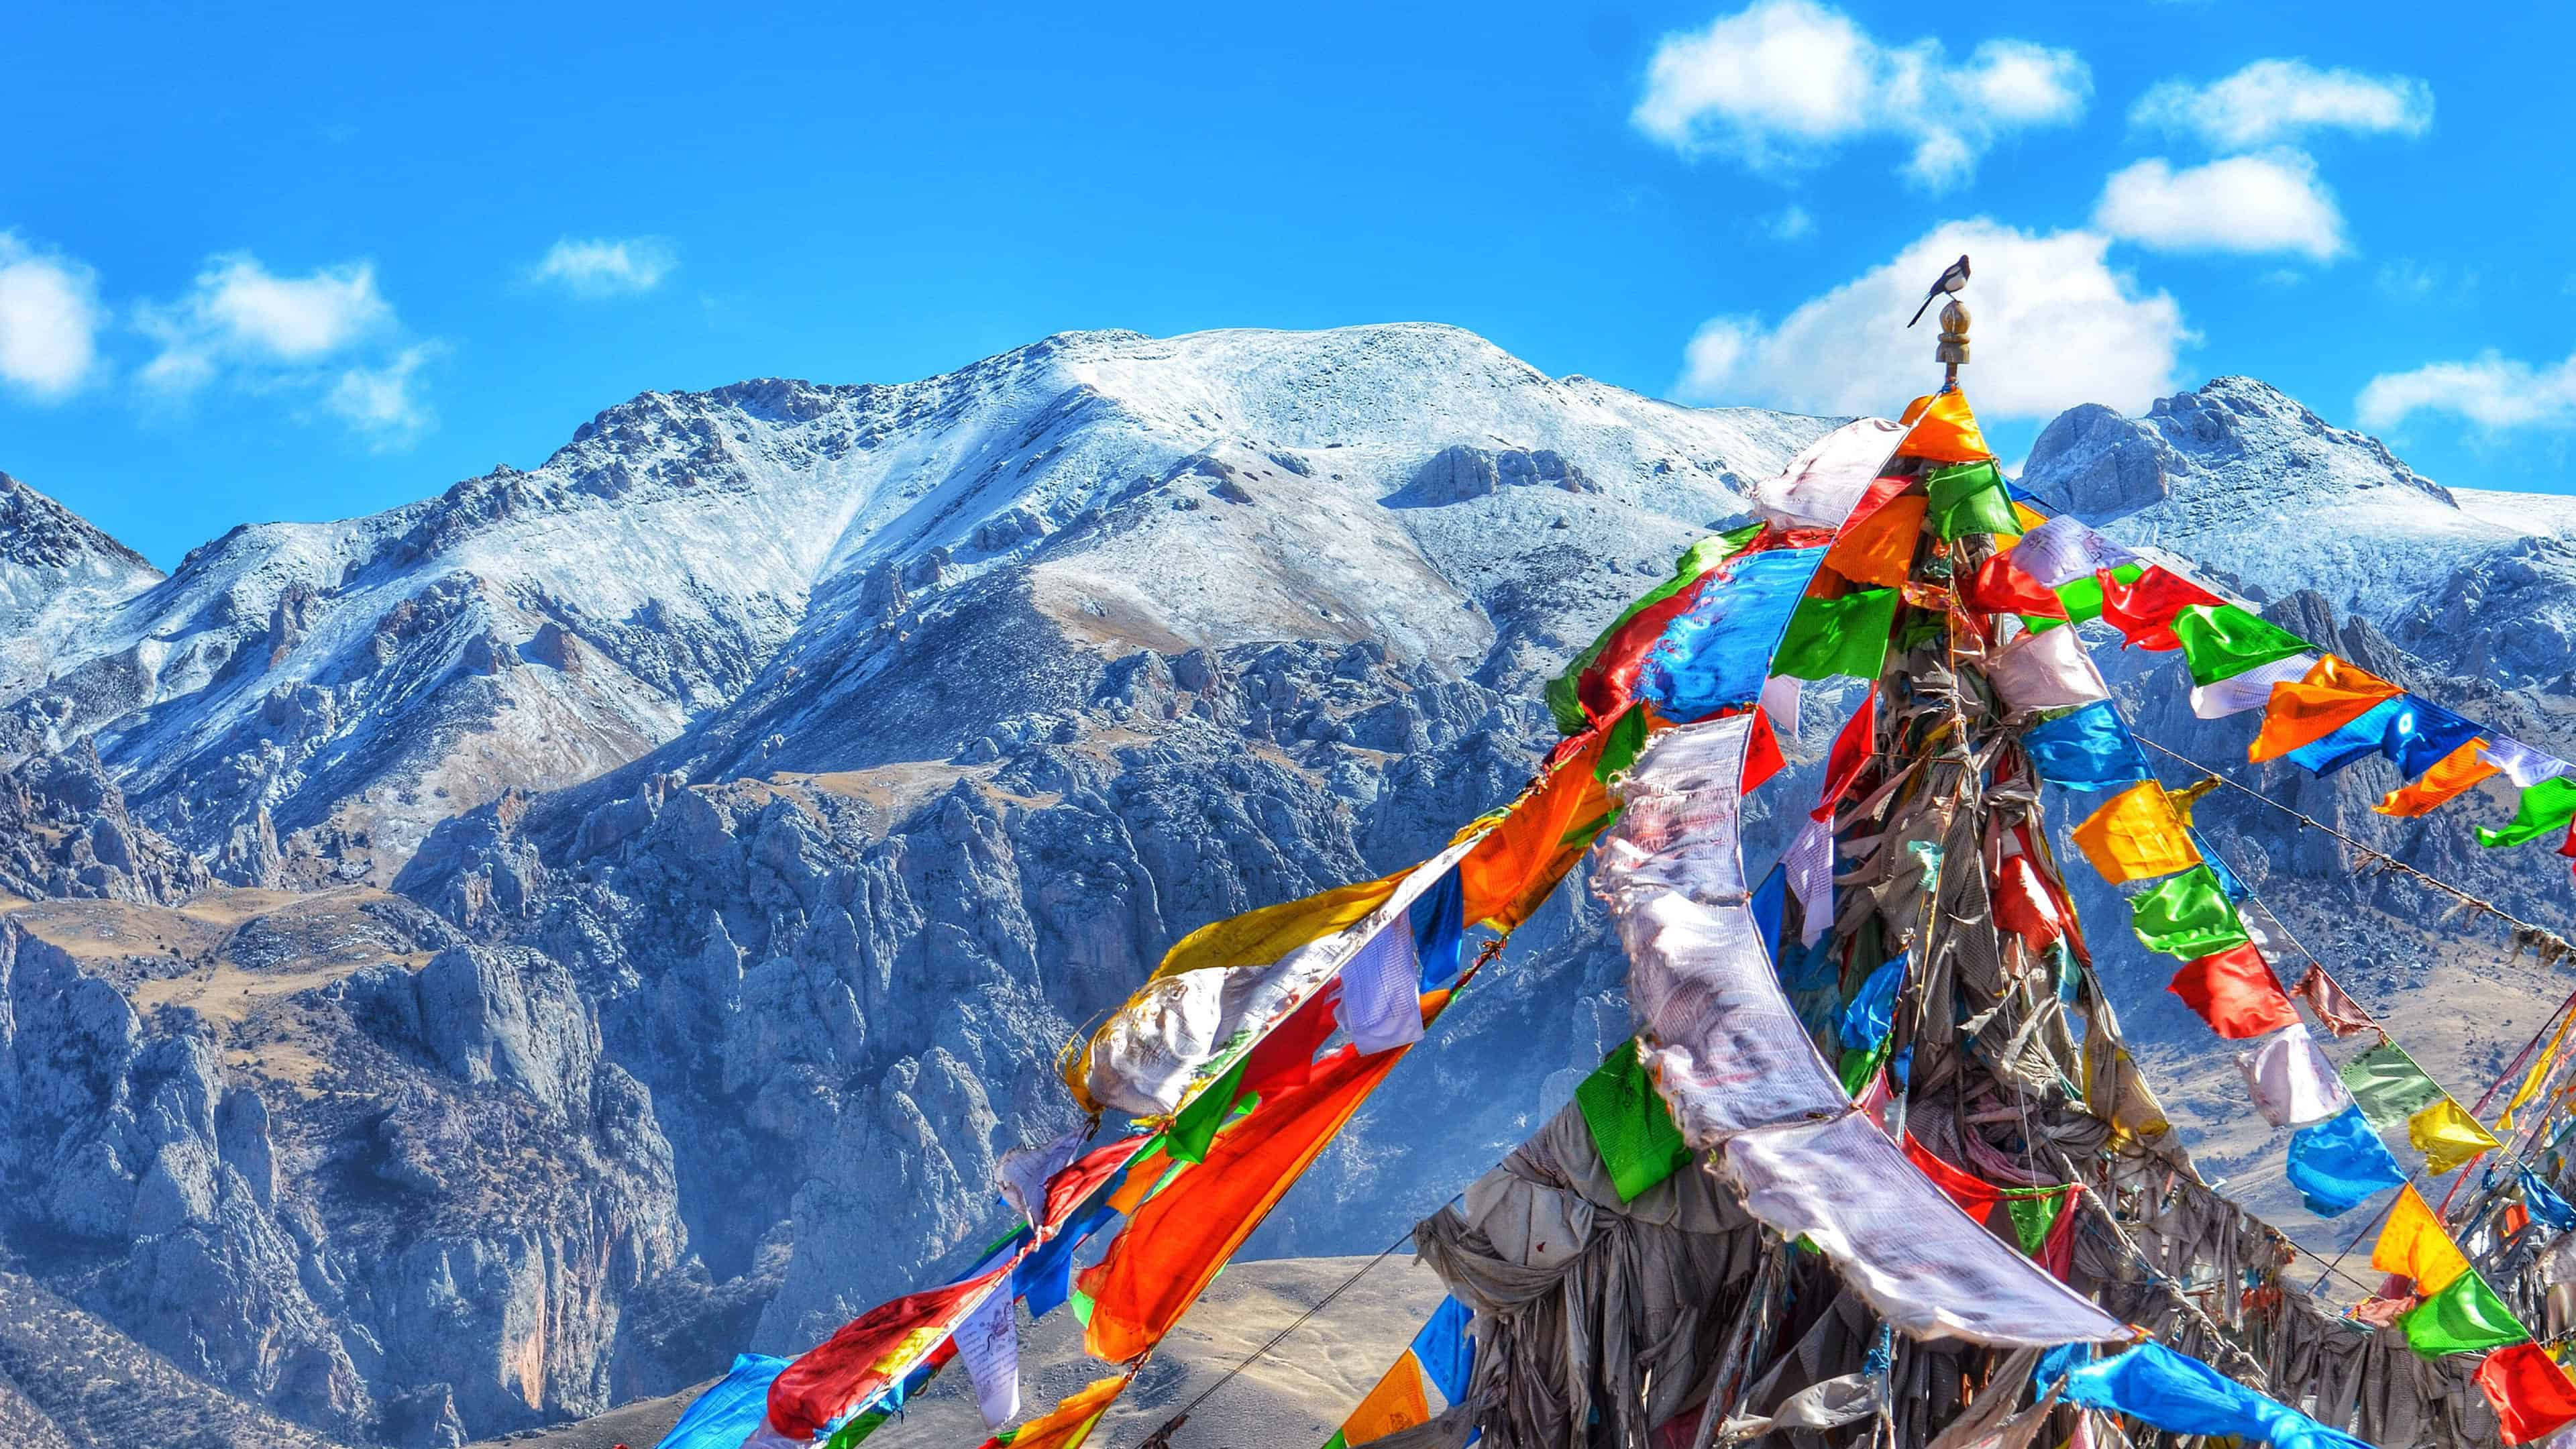 tibet prayer flags uhd 4k wallpaper